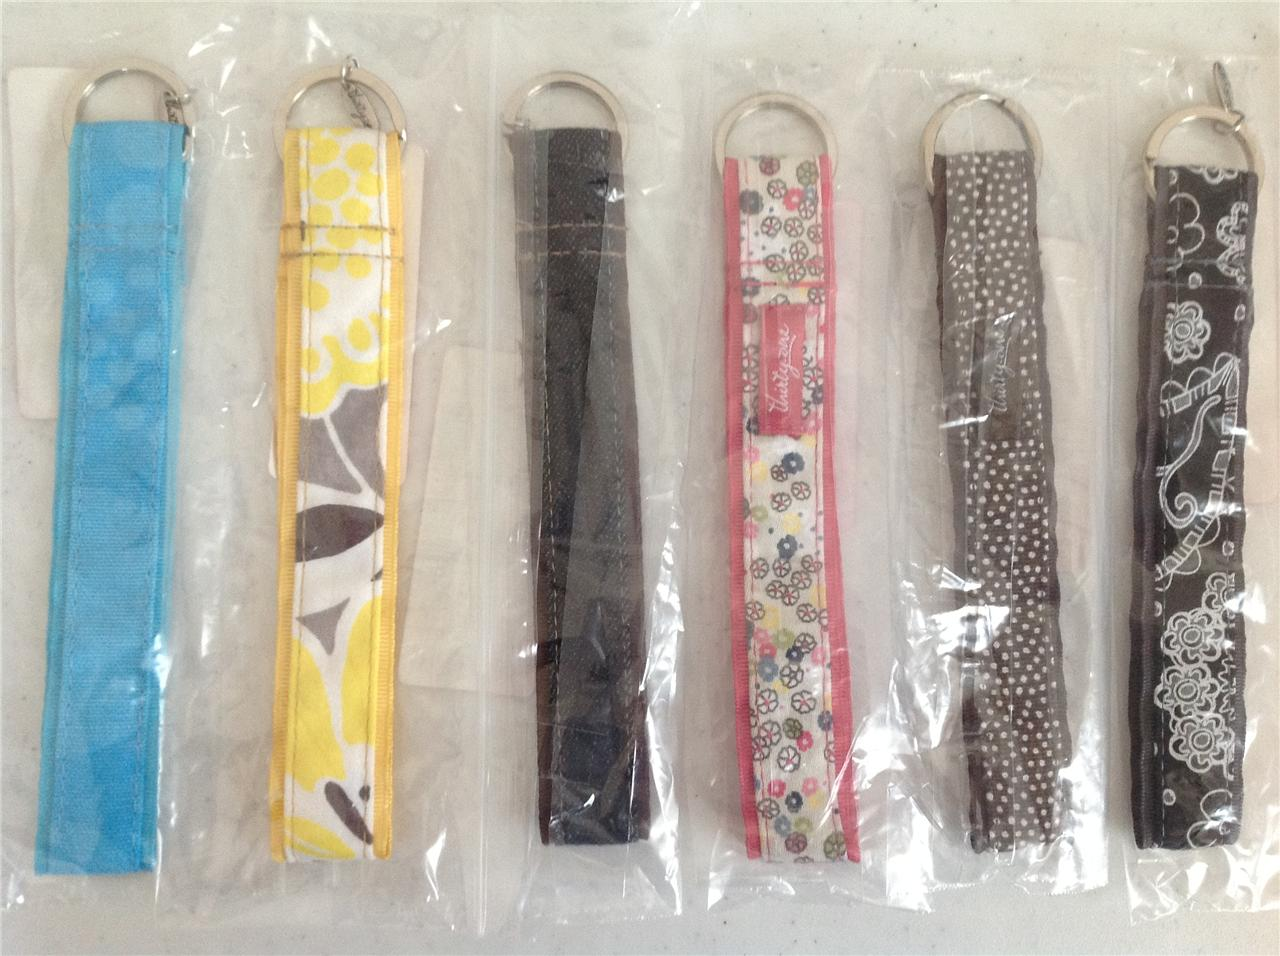 Thirty-One-Gifts-Authentic-KEY-FOB-Keychain-Keyring-Fast-amp-Free-Ship-Choose-One